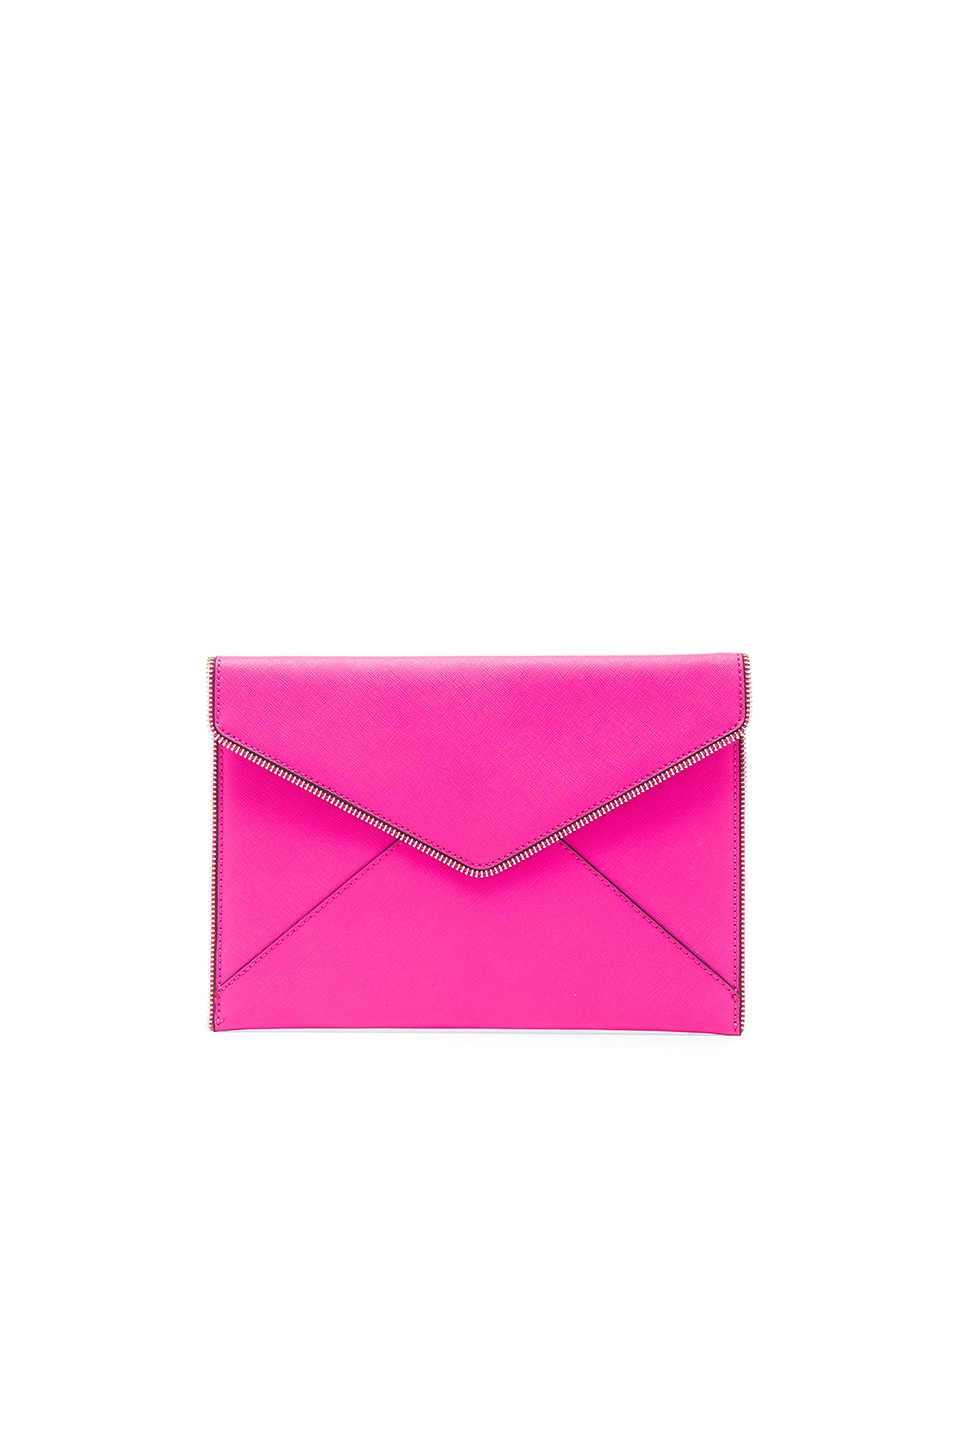 Rebecca Minkoff Leo Clutch in Flamingo